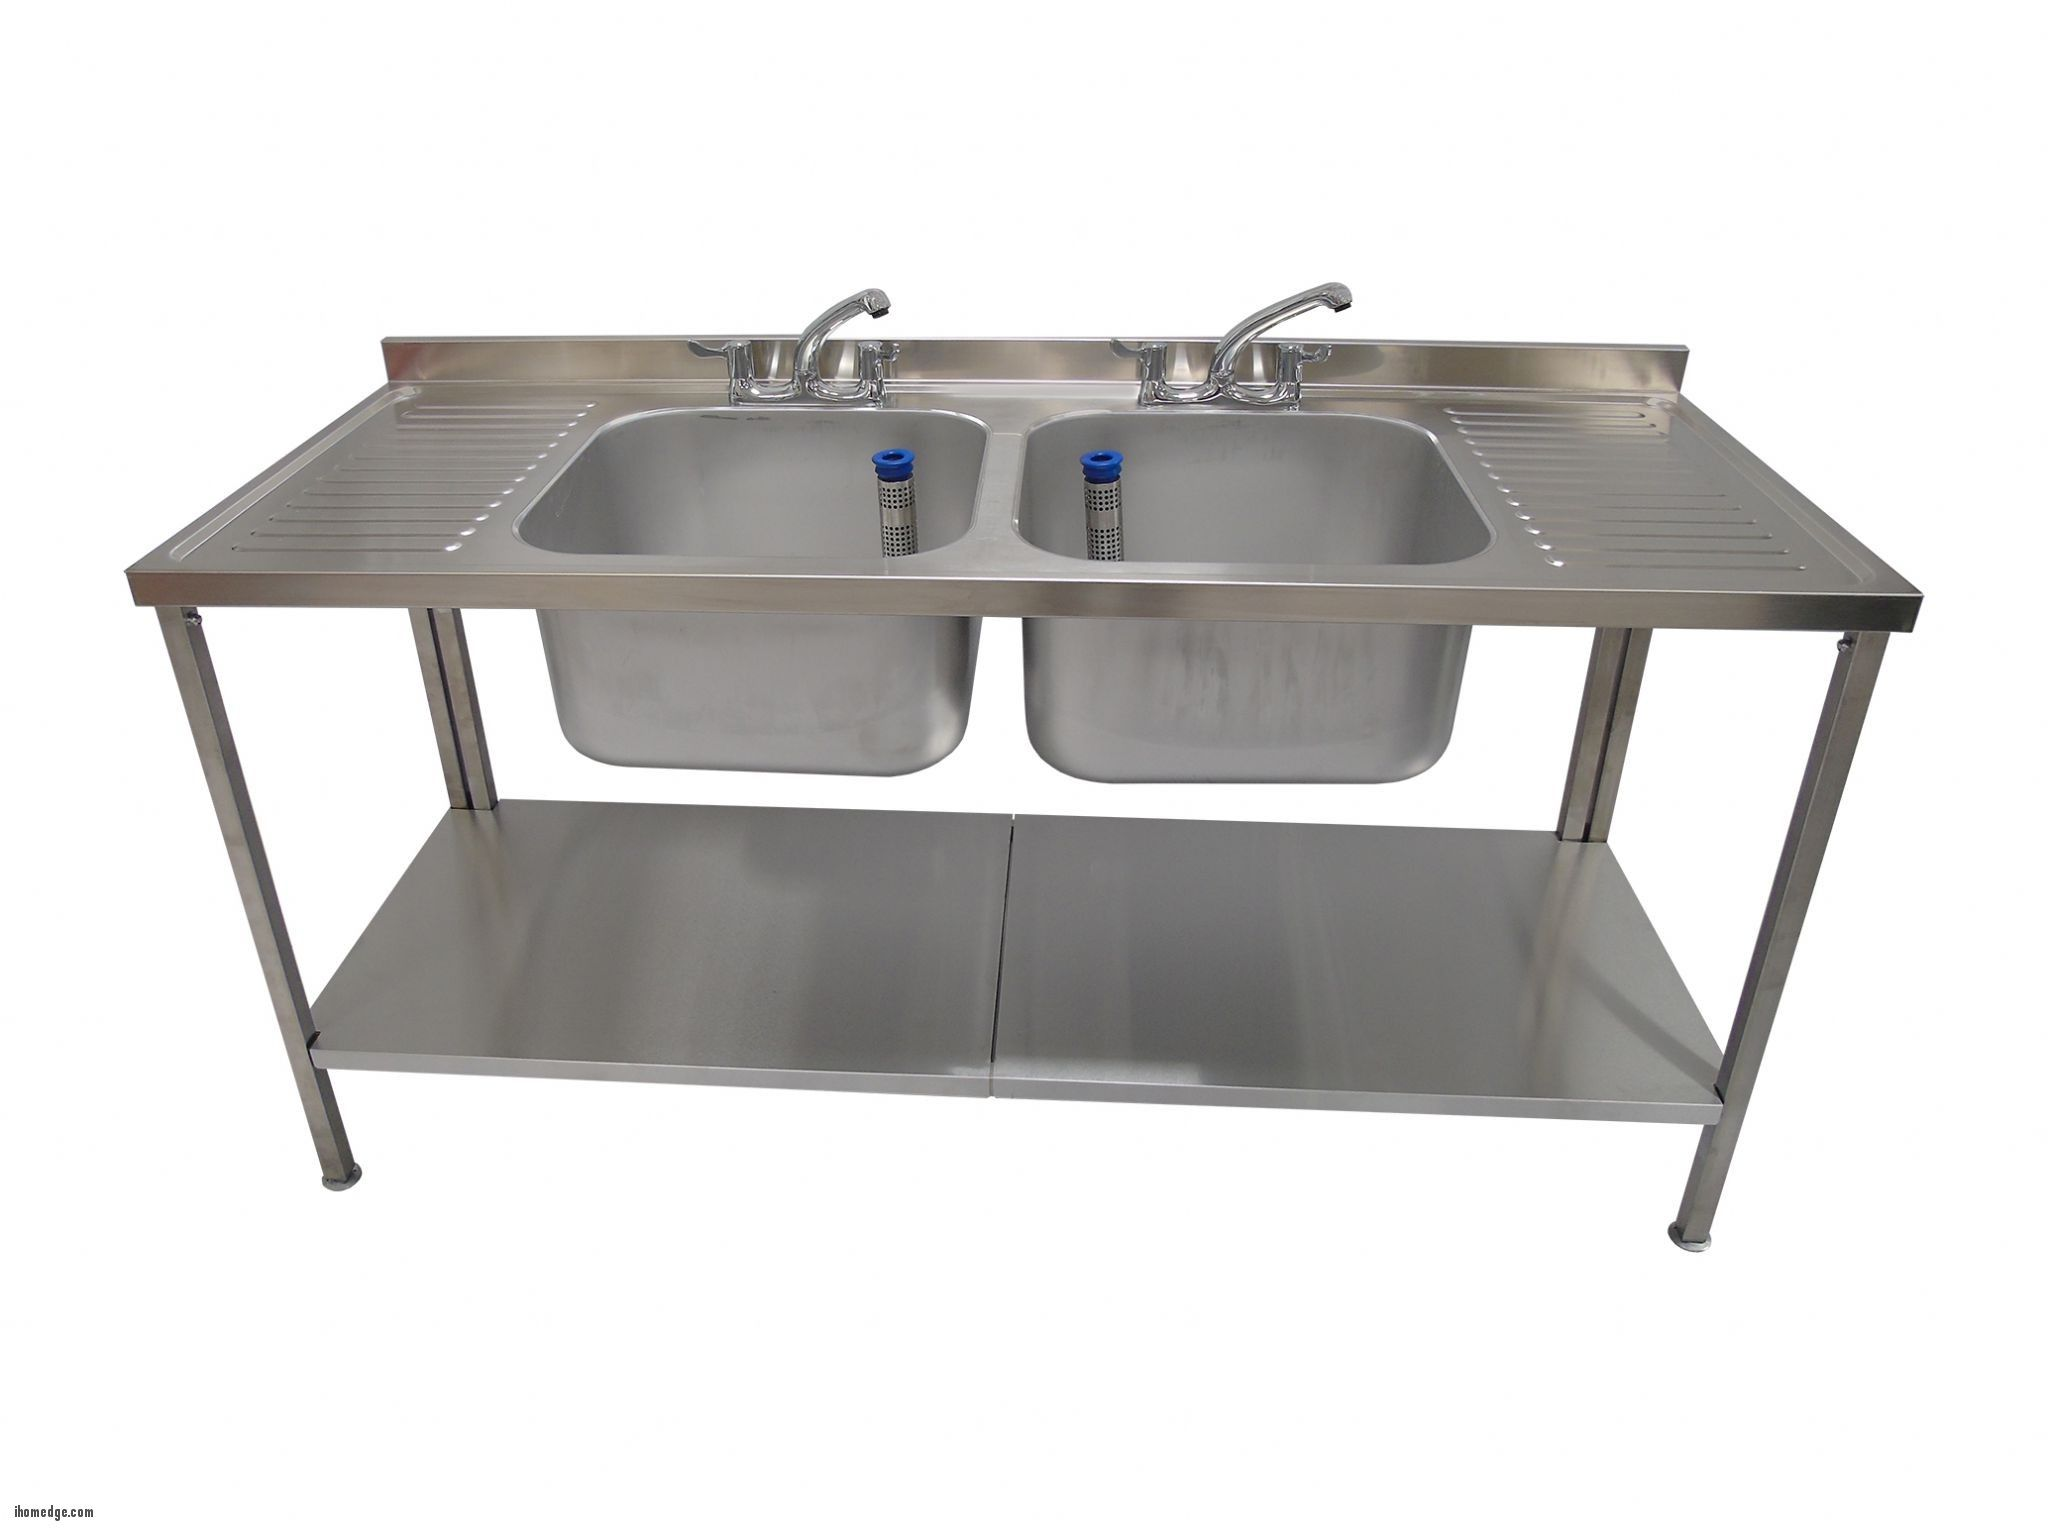 good Unique Commercial Sink , stainless steel sink double bowl ...